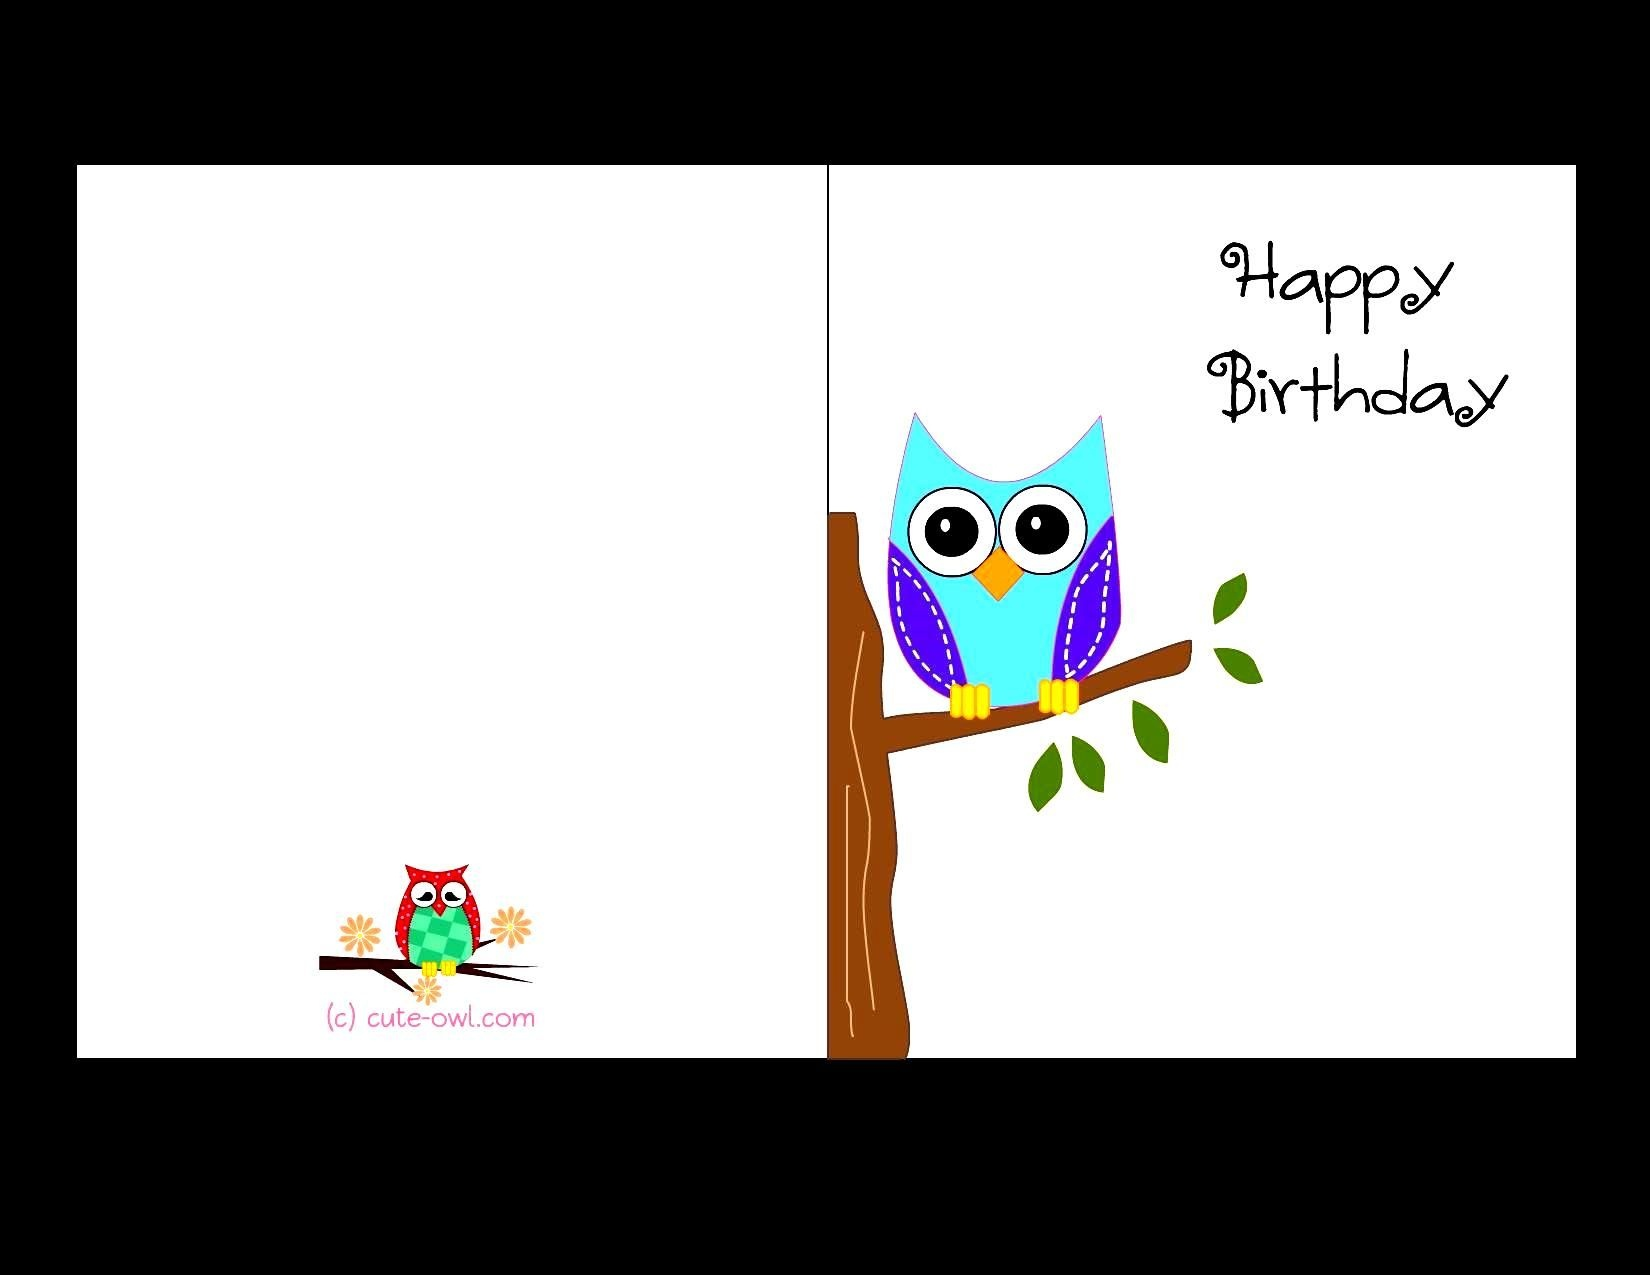 Birthday Cards For Printable - Demir.iso-Consulting.co - Free Printable Birthday Cards For Adults